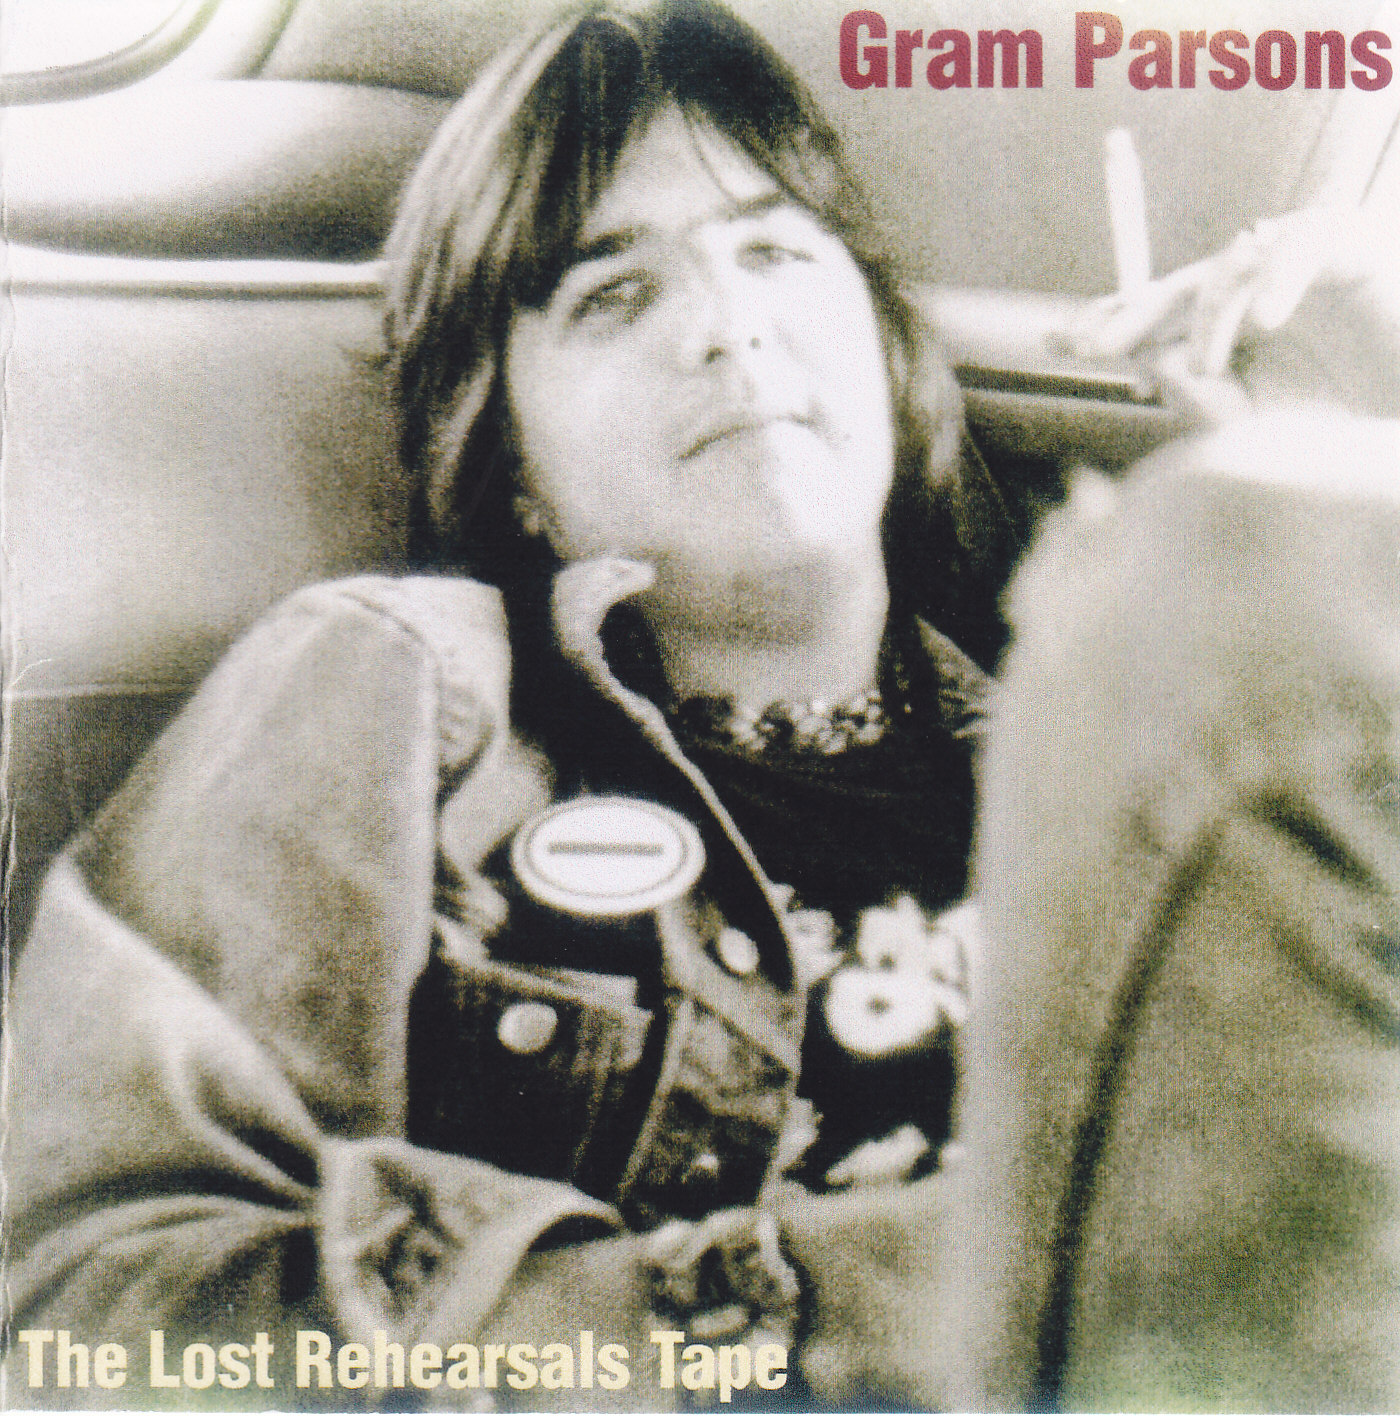 This is a fascinating selection of Gram Parsons rehearsal tapes from 1972, ...